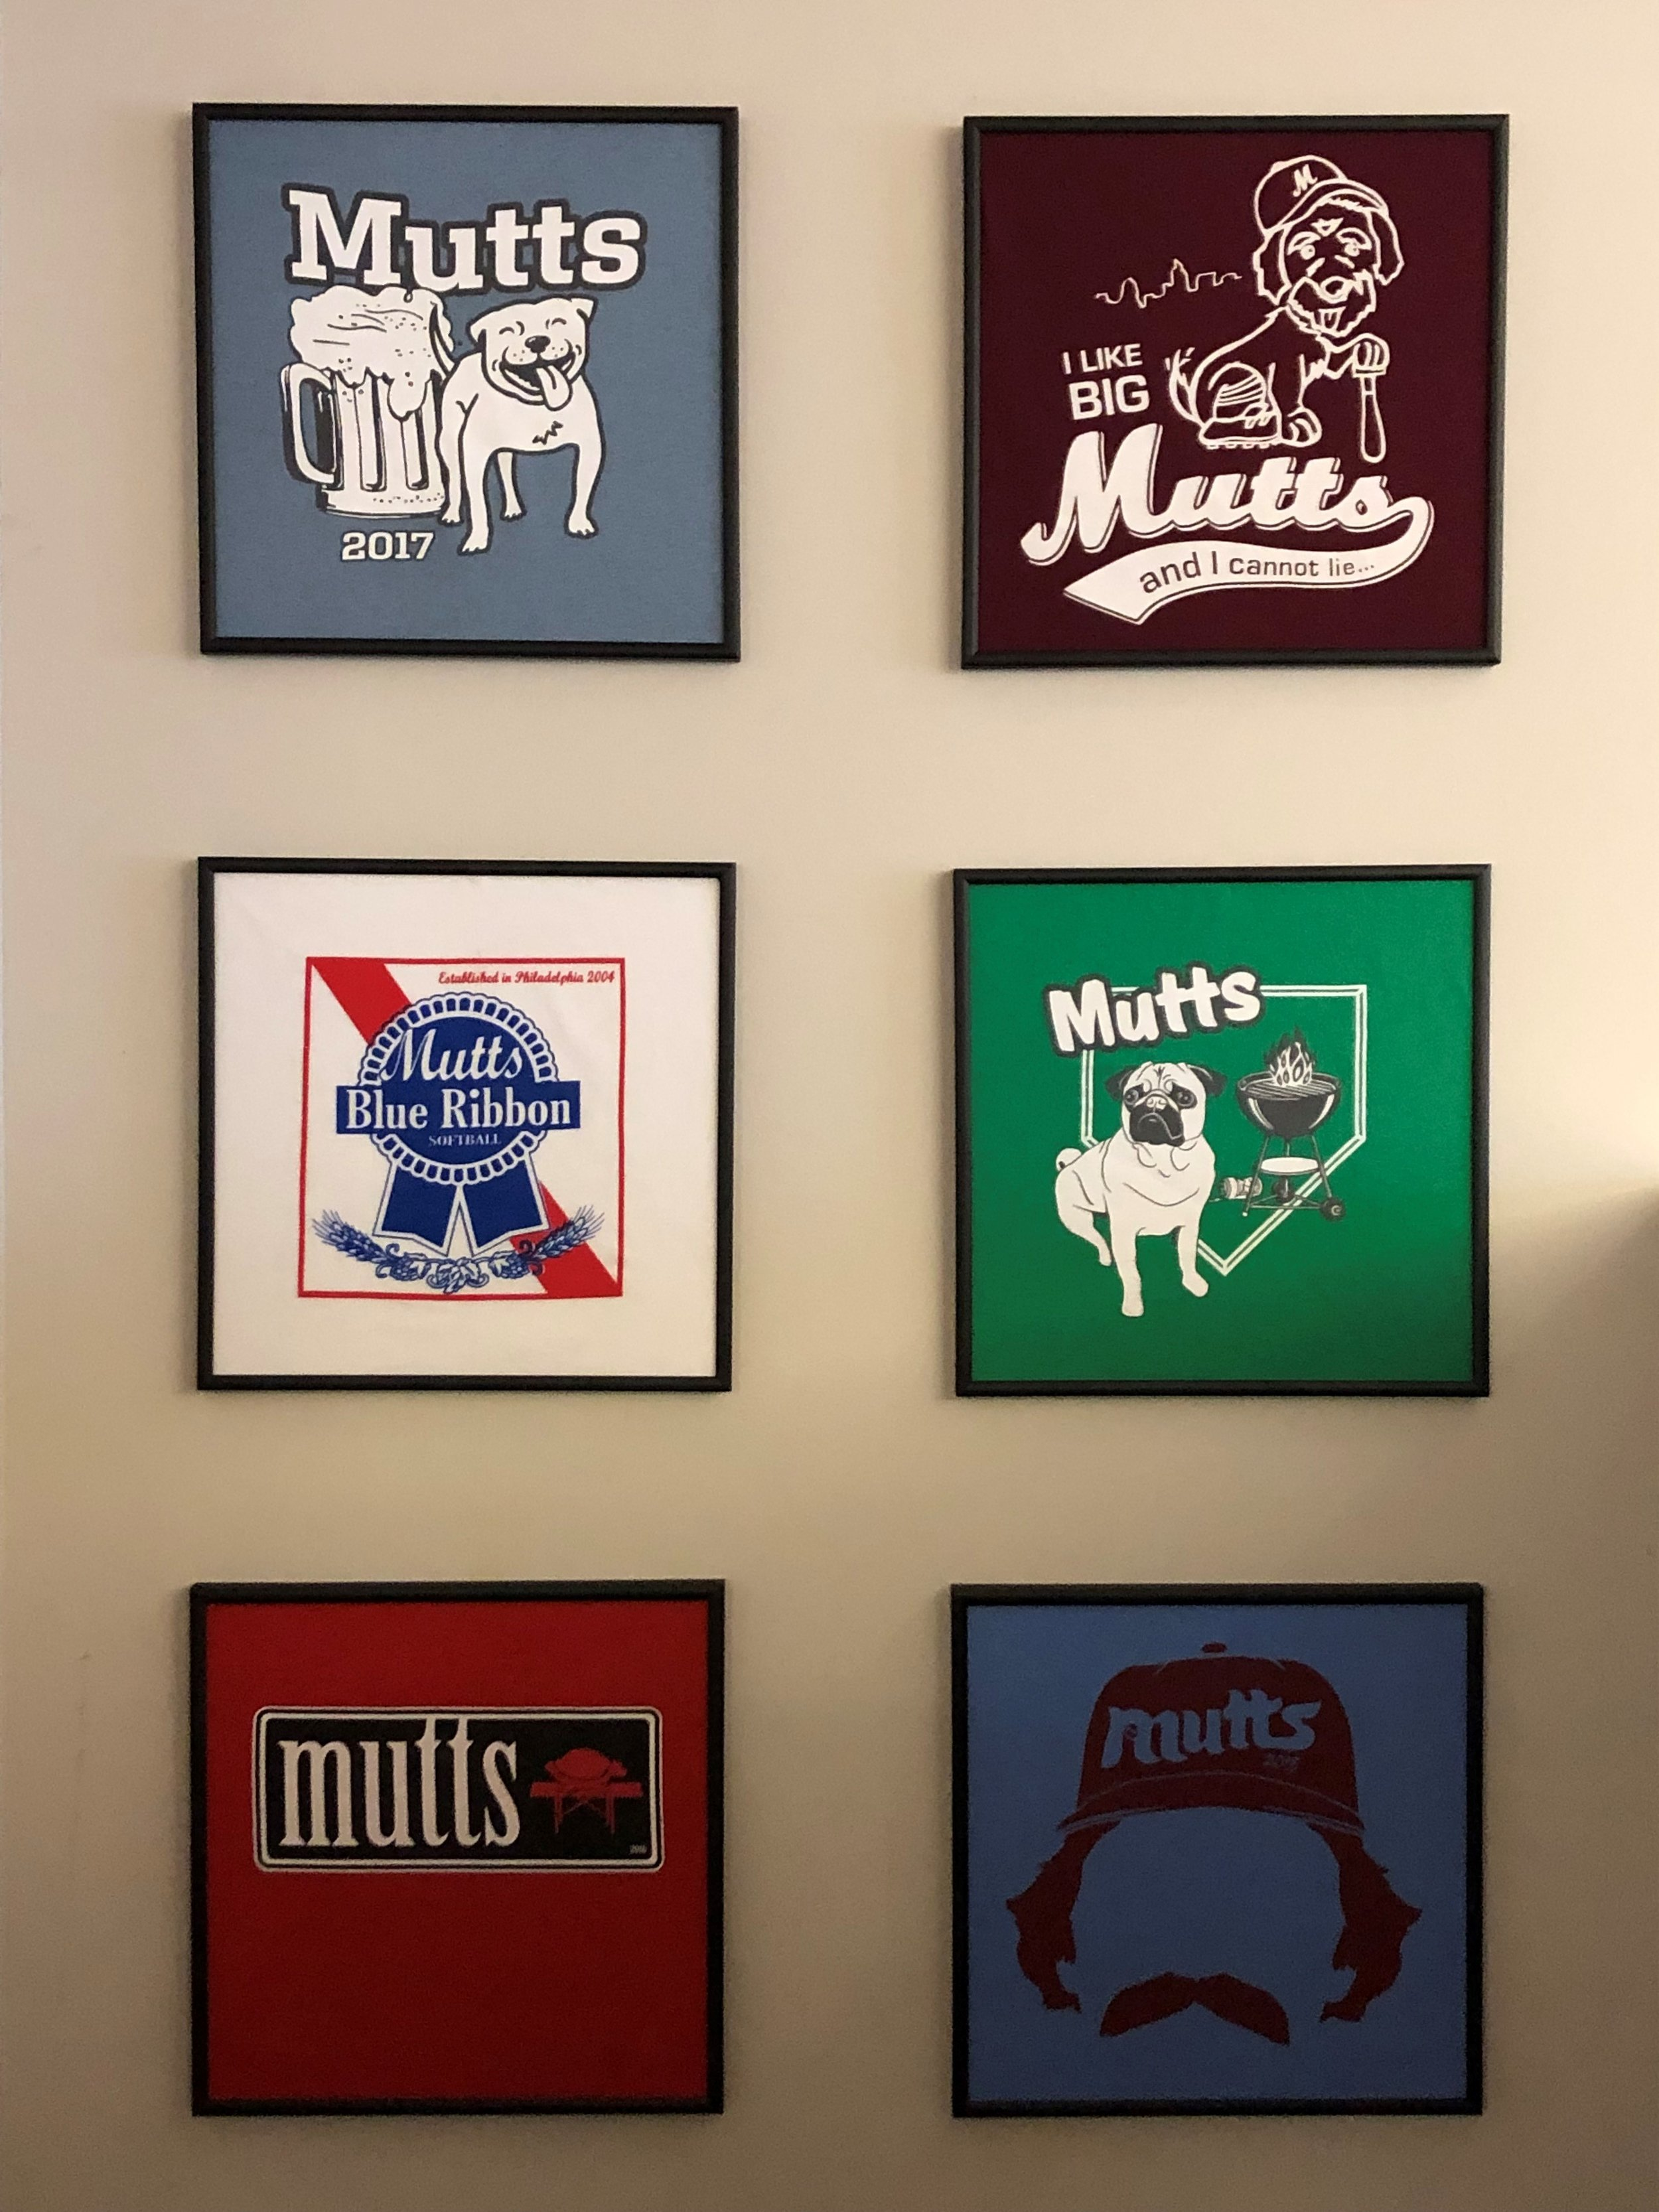 Mutts shirts through the years